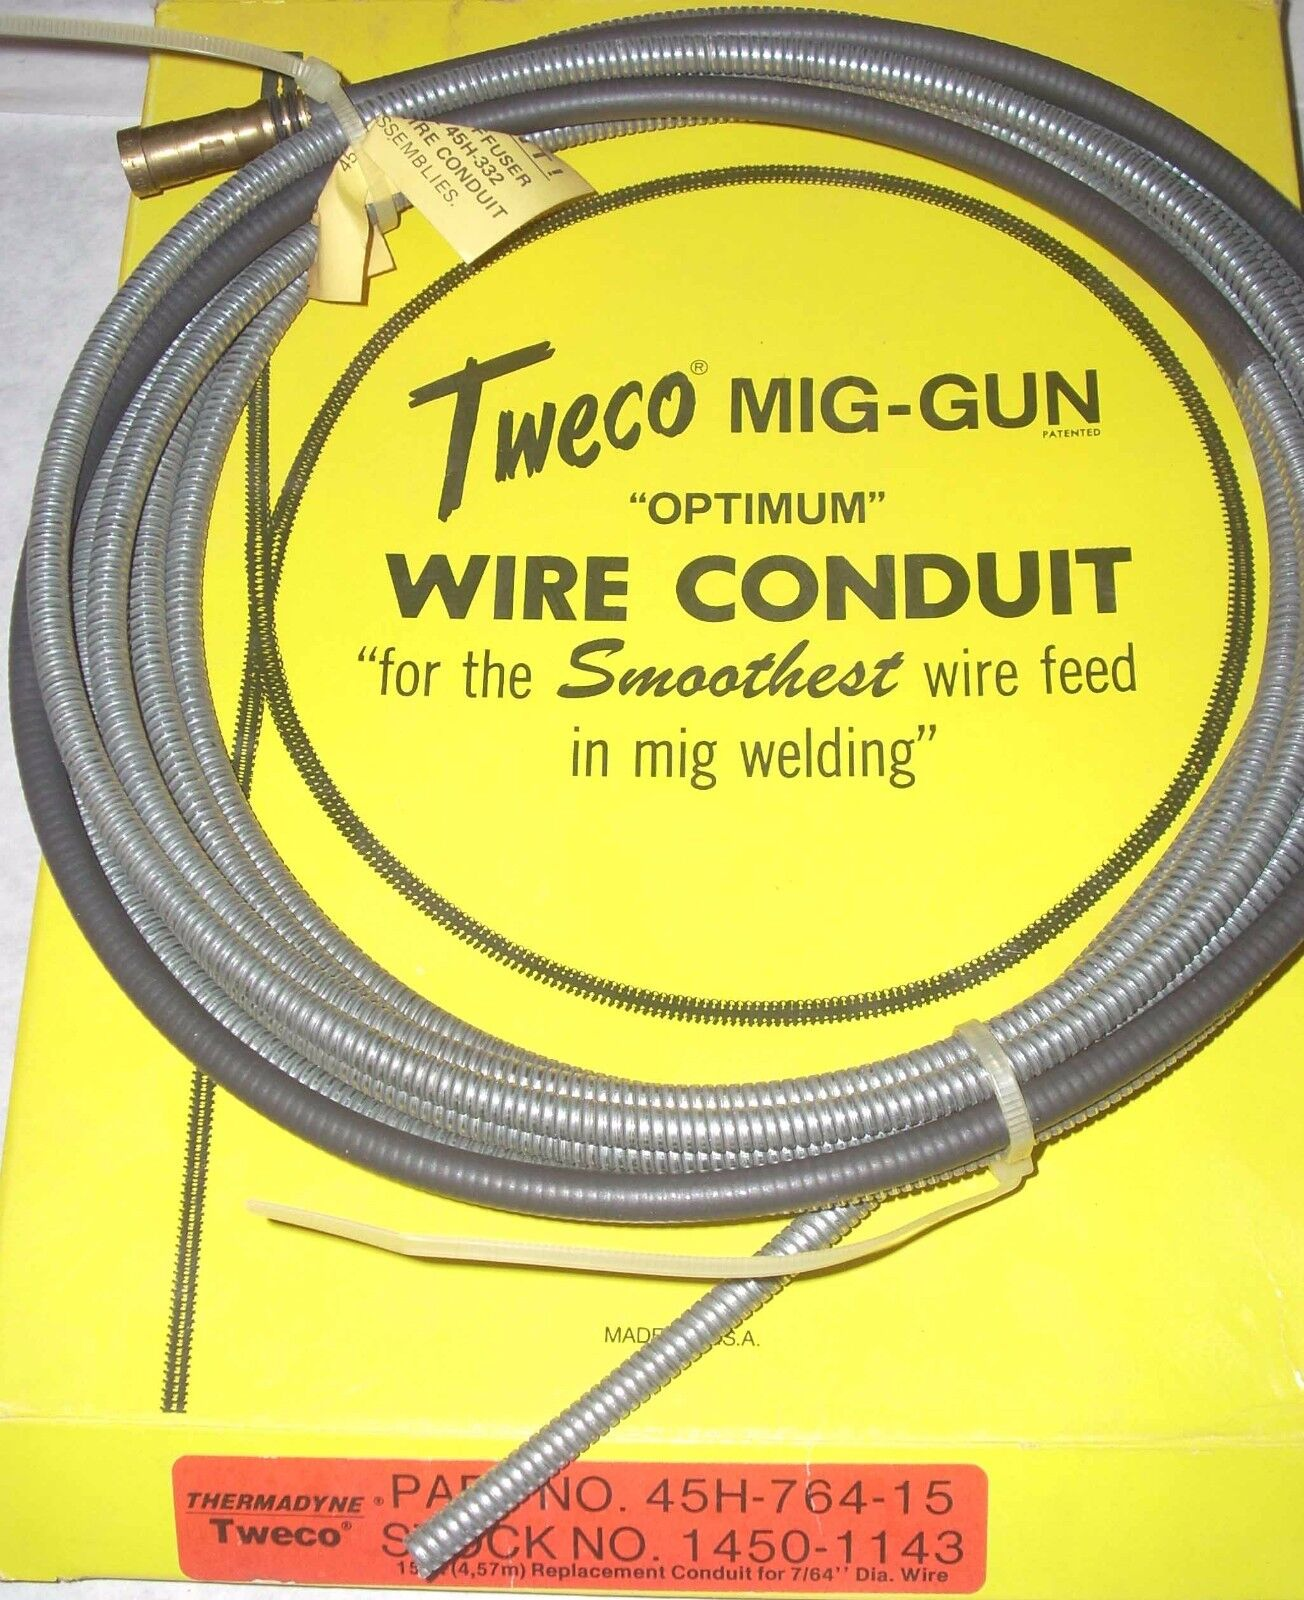 Tweco 45h 764 15 Mig Wire Conduit 3a Ebay Electrical Wiring Norton Secured Powered By Verisign